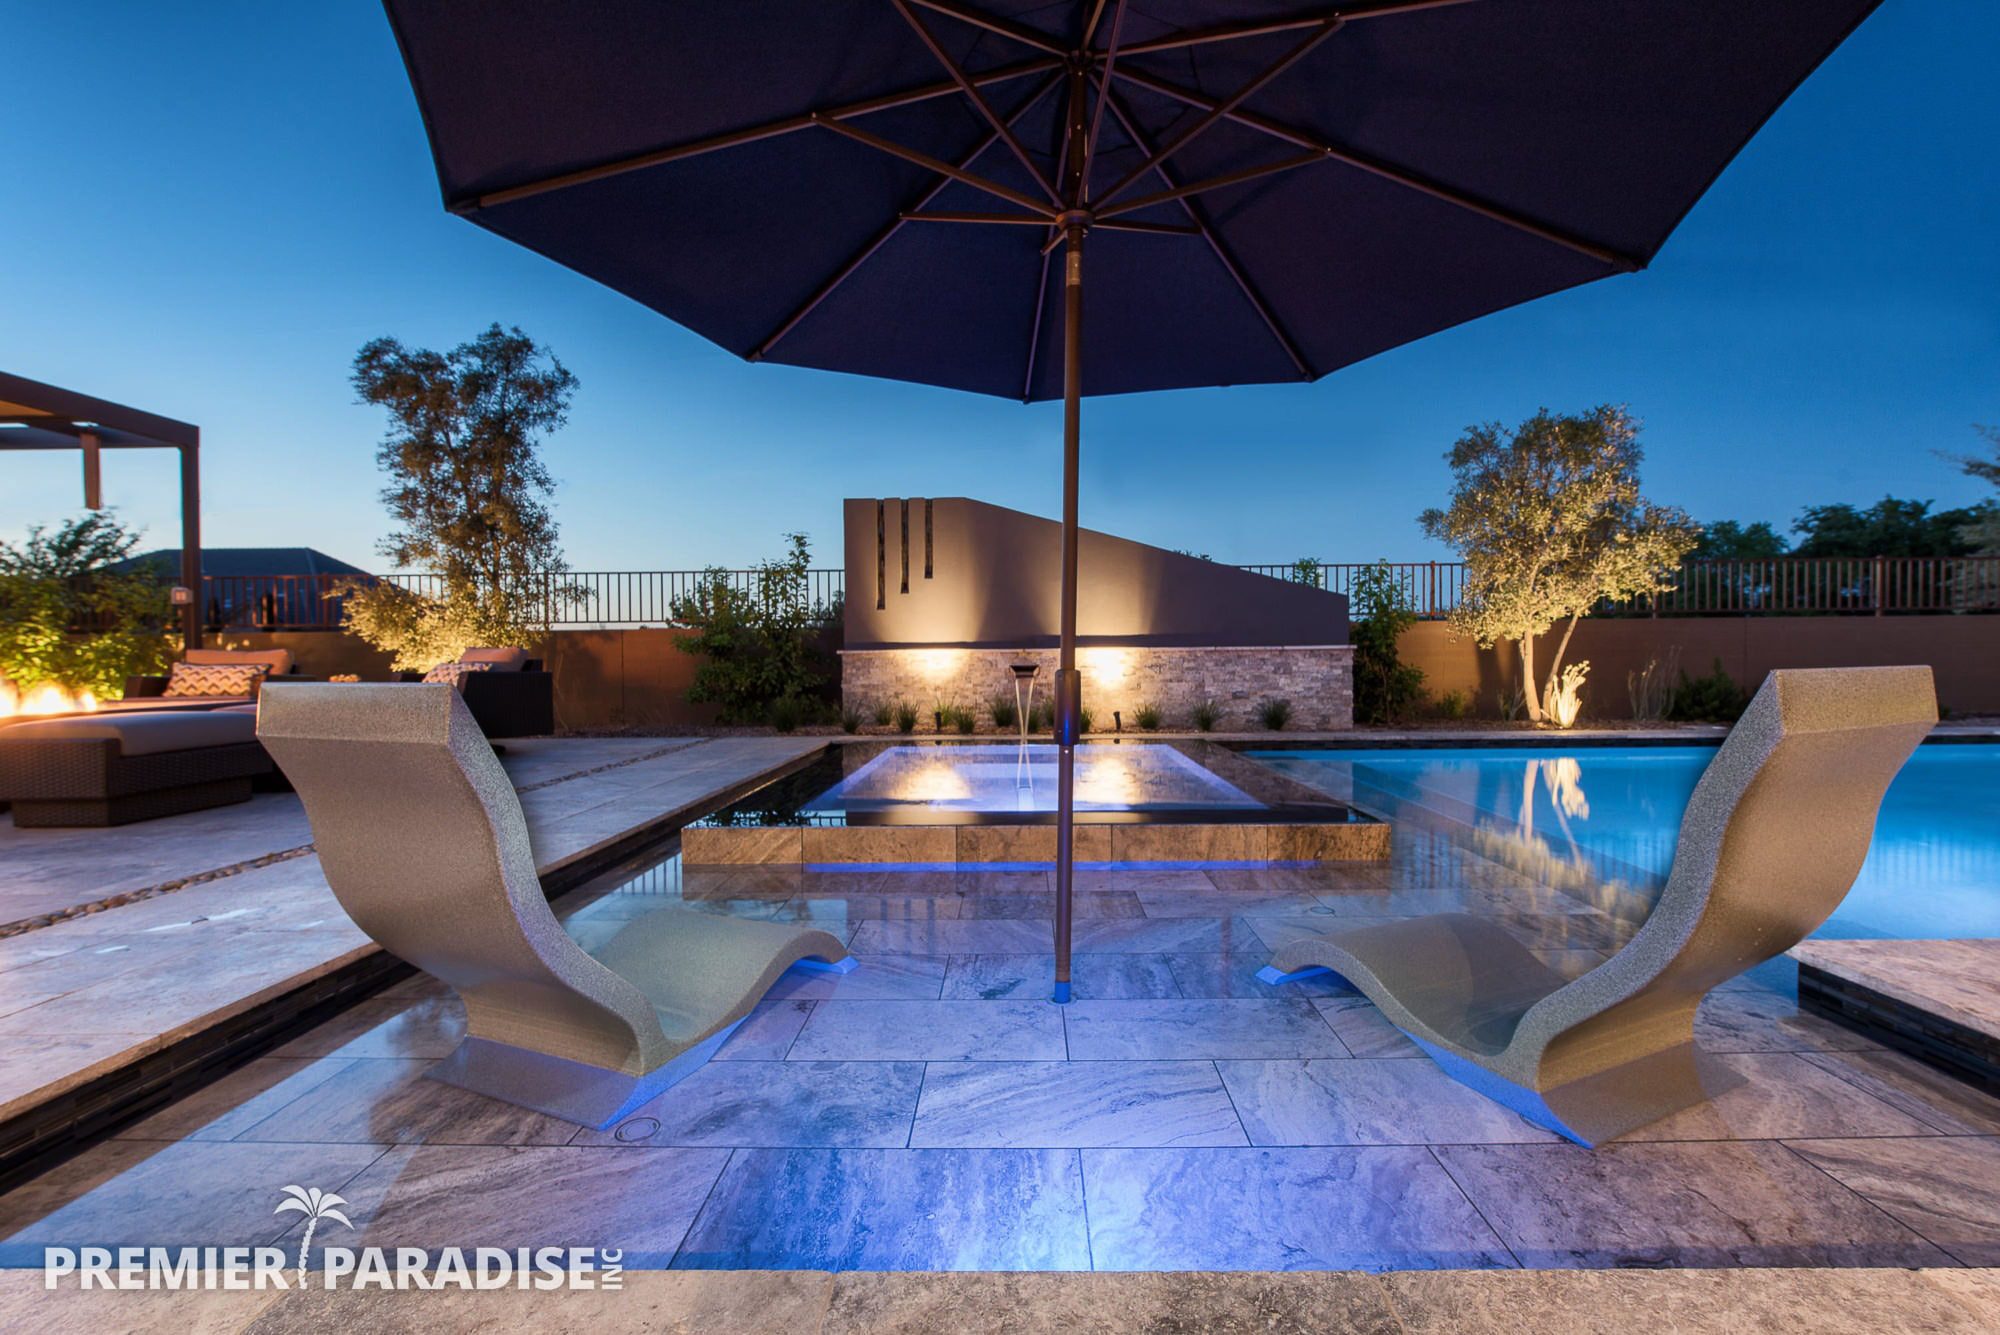 Modern Perimeter Overflow Spa & Luxury Outdoor Living ... on Outdoor Living Space Builders Near Me  id=13177